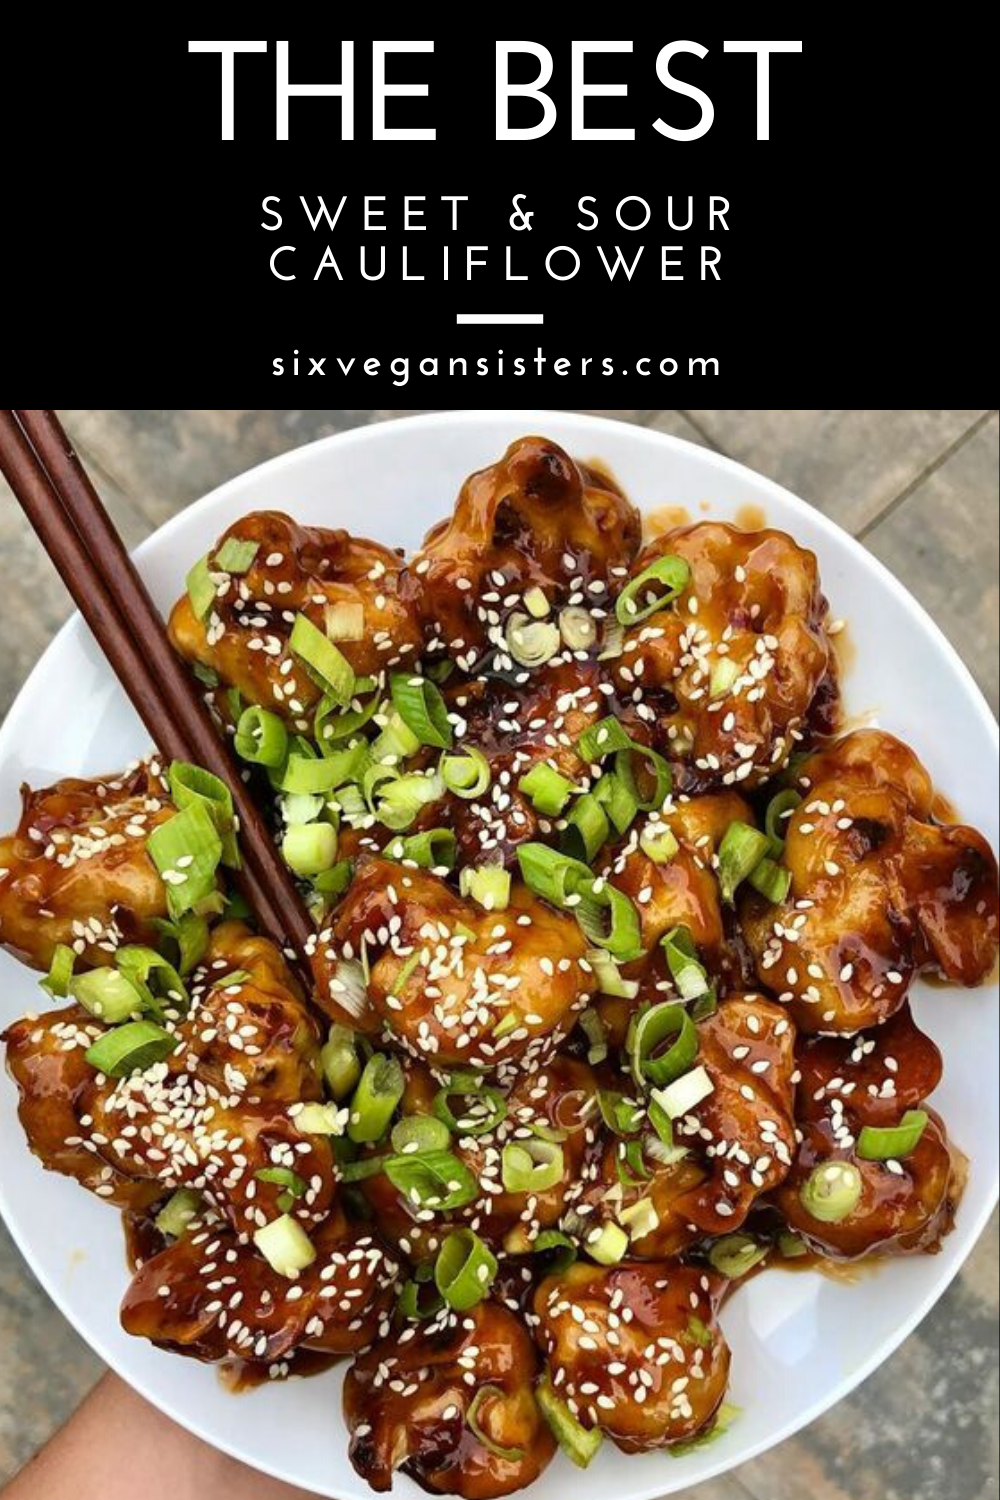 Photo of THE BEST Sweet & Sour Cauliflower